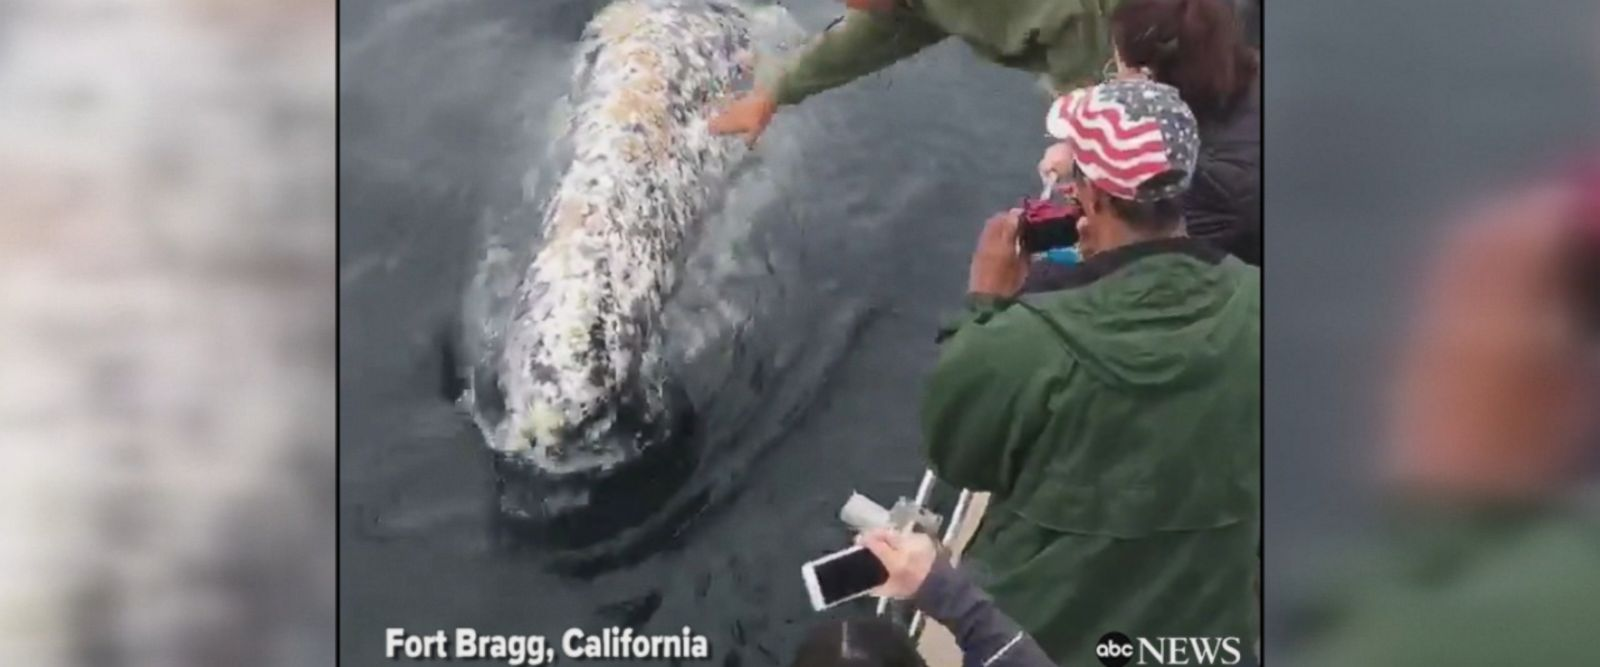 Playful whale delights tourists on a charter boat in Fort Bragg, California by blowing water from his blowhole.